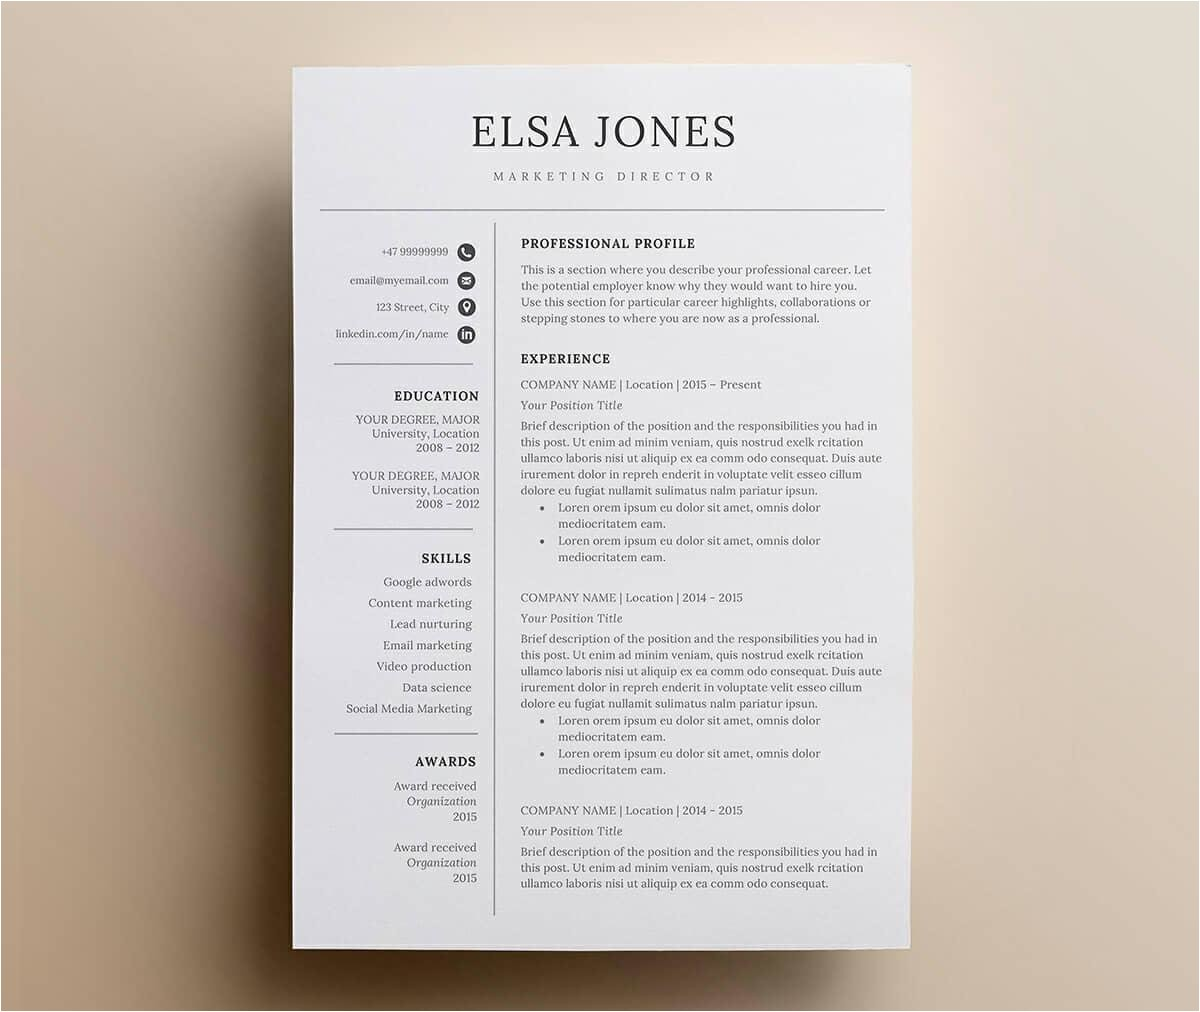 Iworkcommunity Resume Templates Simple Resume Templates 15 Examples to Download Use now